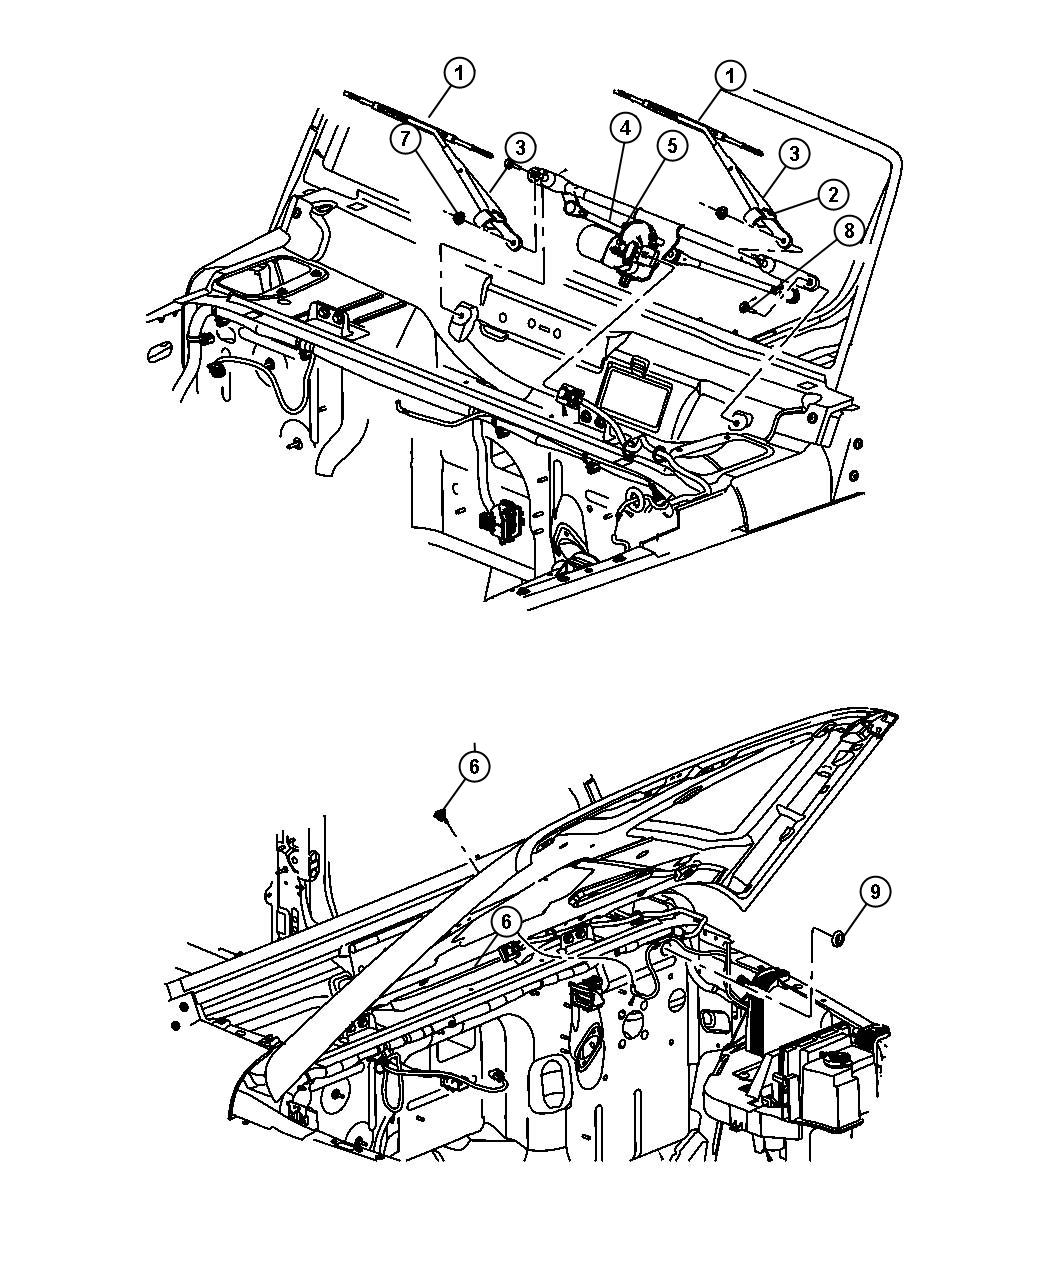 Jeep Wrangler Used for: MOTOR AND LINKAGE. Windshield